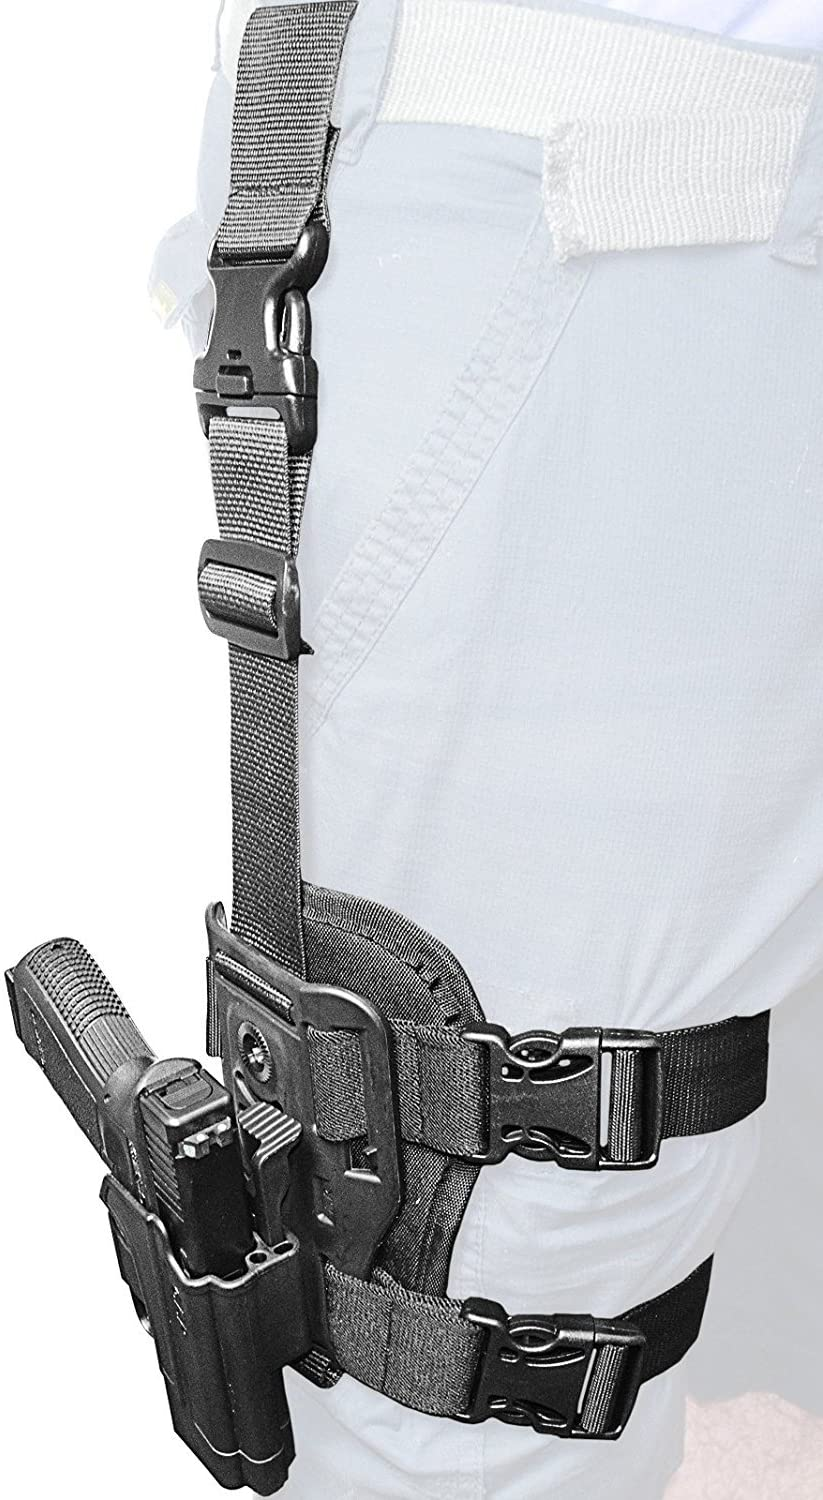 Orpaz Dropleg Thigh rig Platform + Active Retention ROTO Rotation Tactical Paddle Holster with Tention ajustment for Glock 17/19/22/23/25/26/27/31/32/34/35